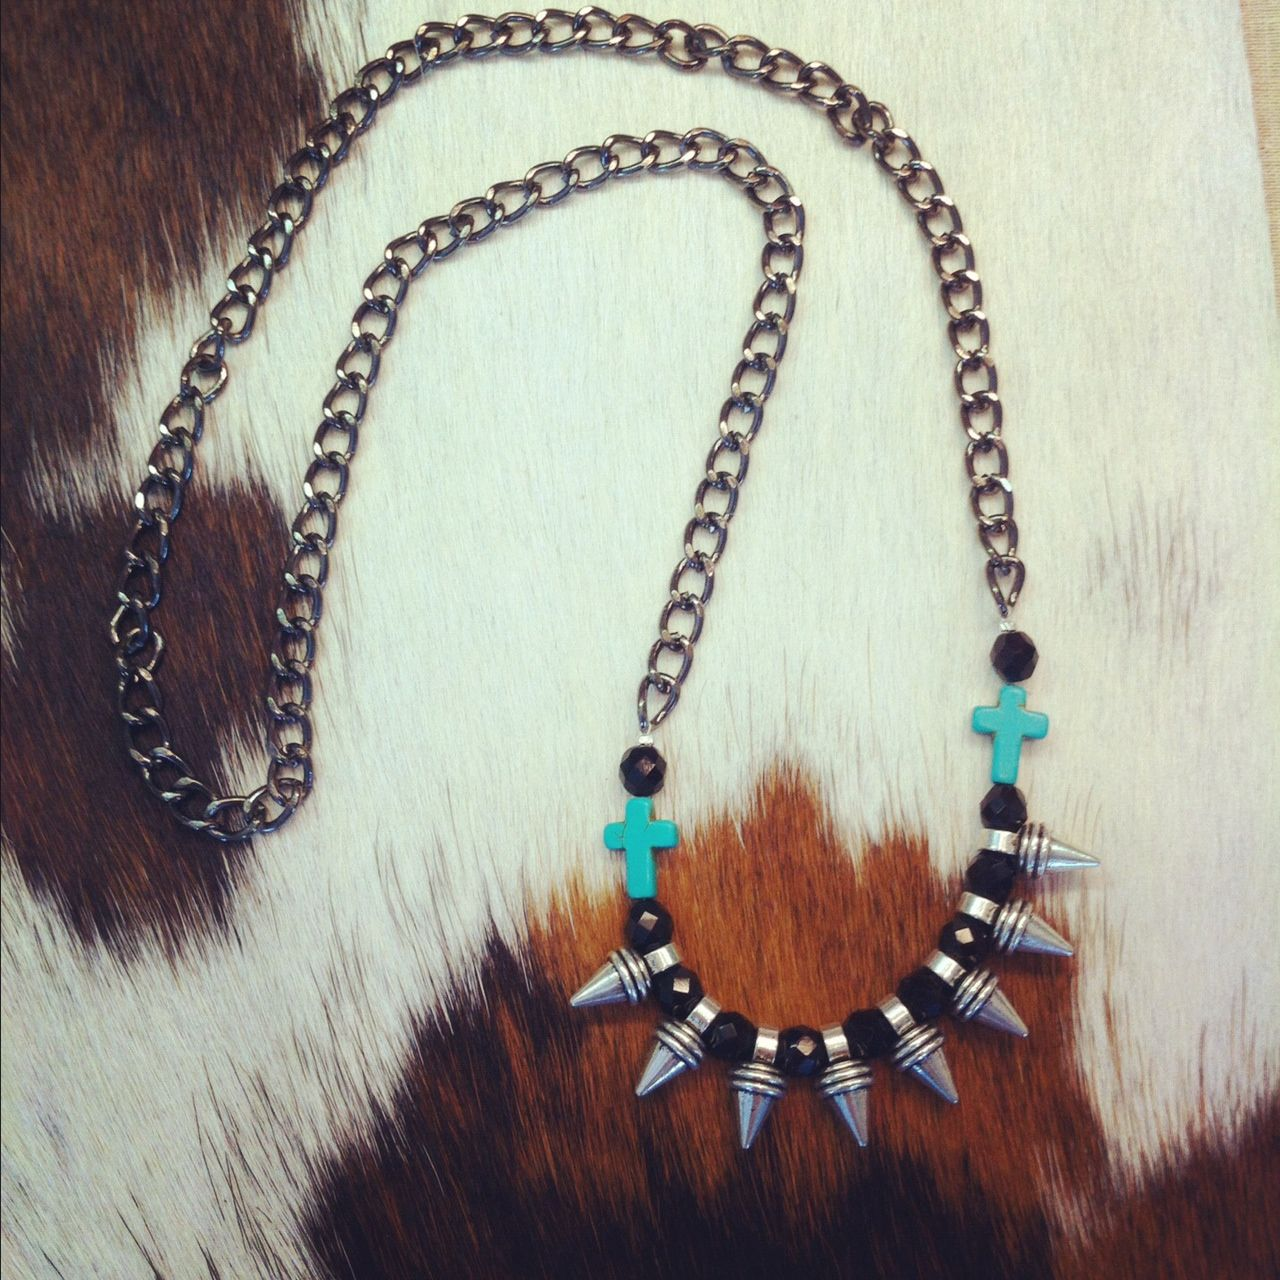 Night Owl Necklace By Our Friends At Mary Ropelewski The